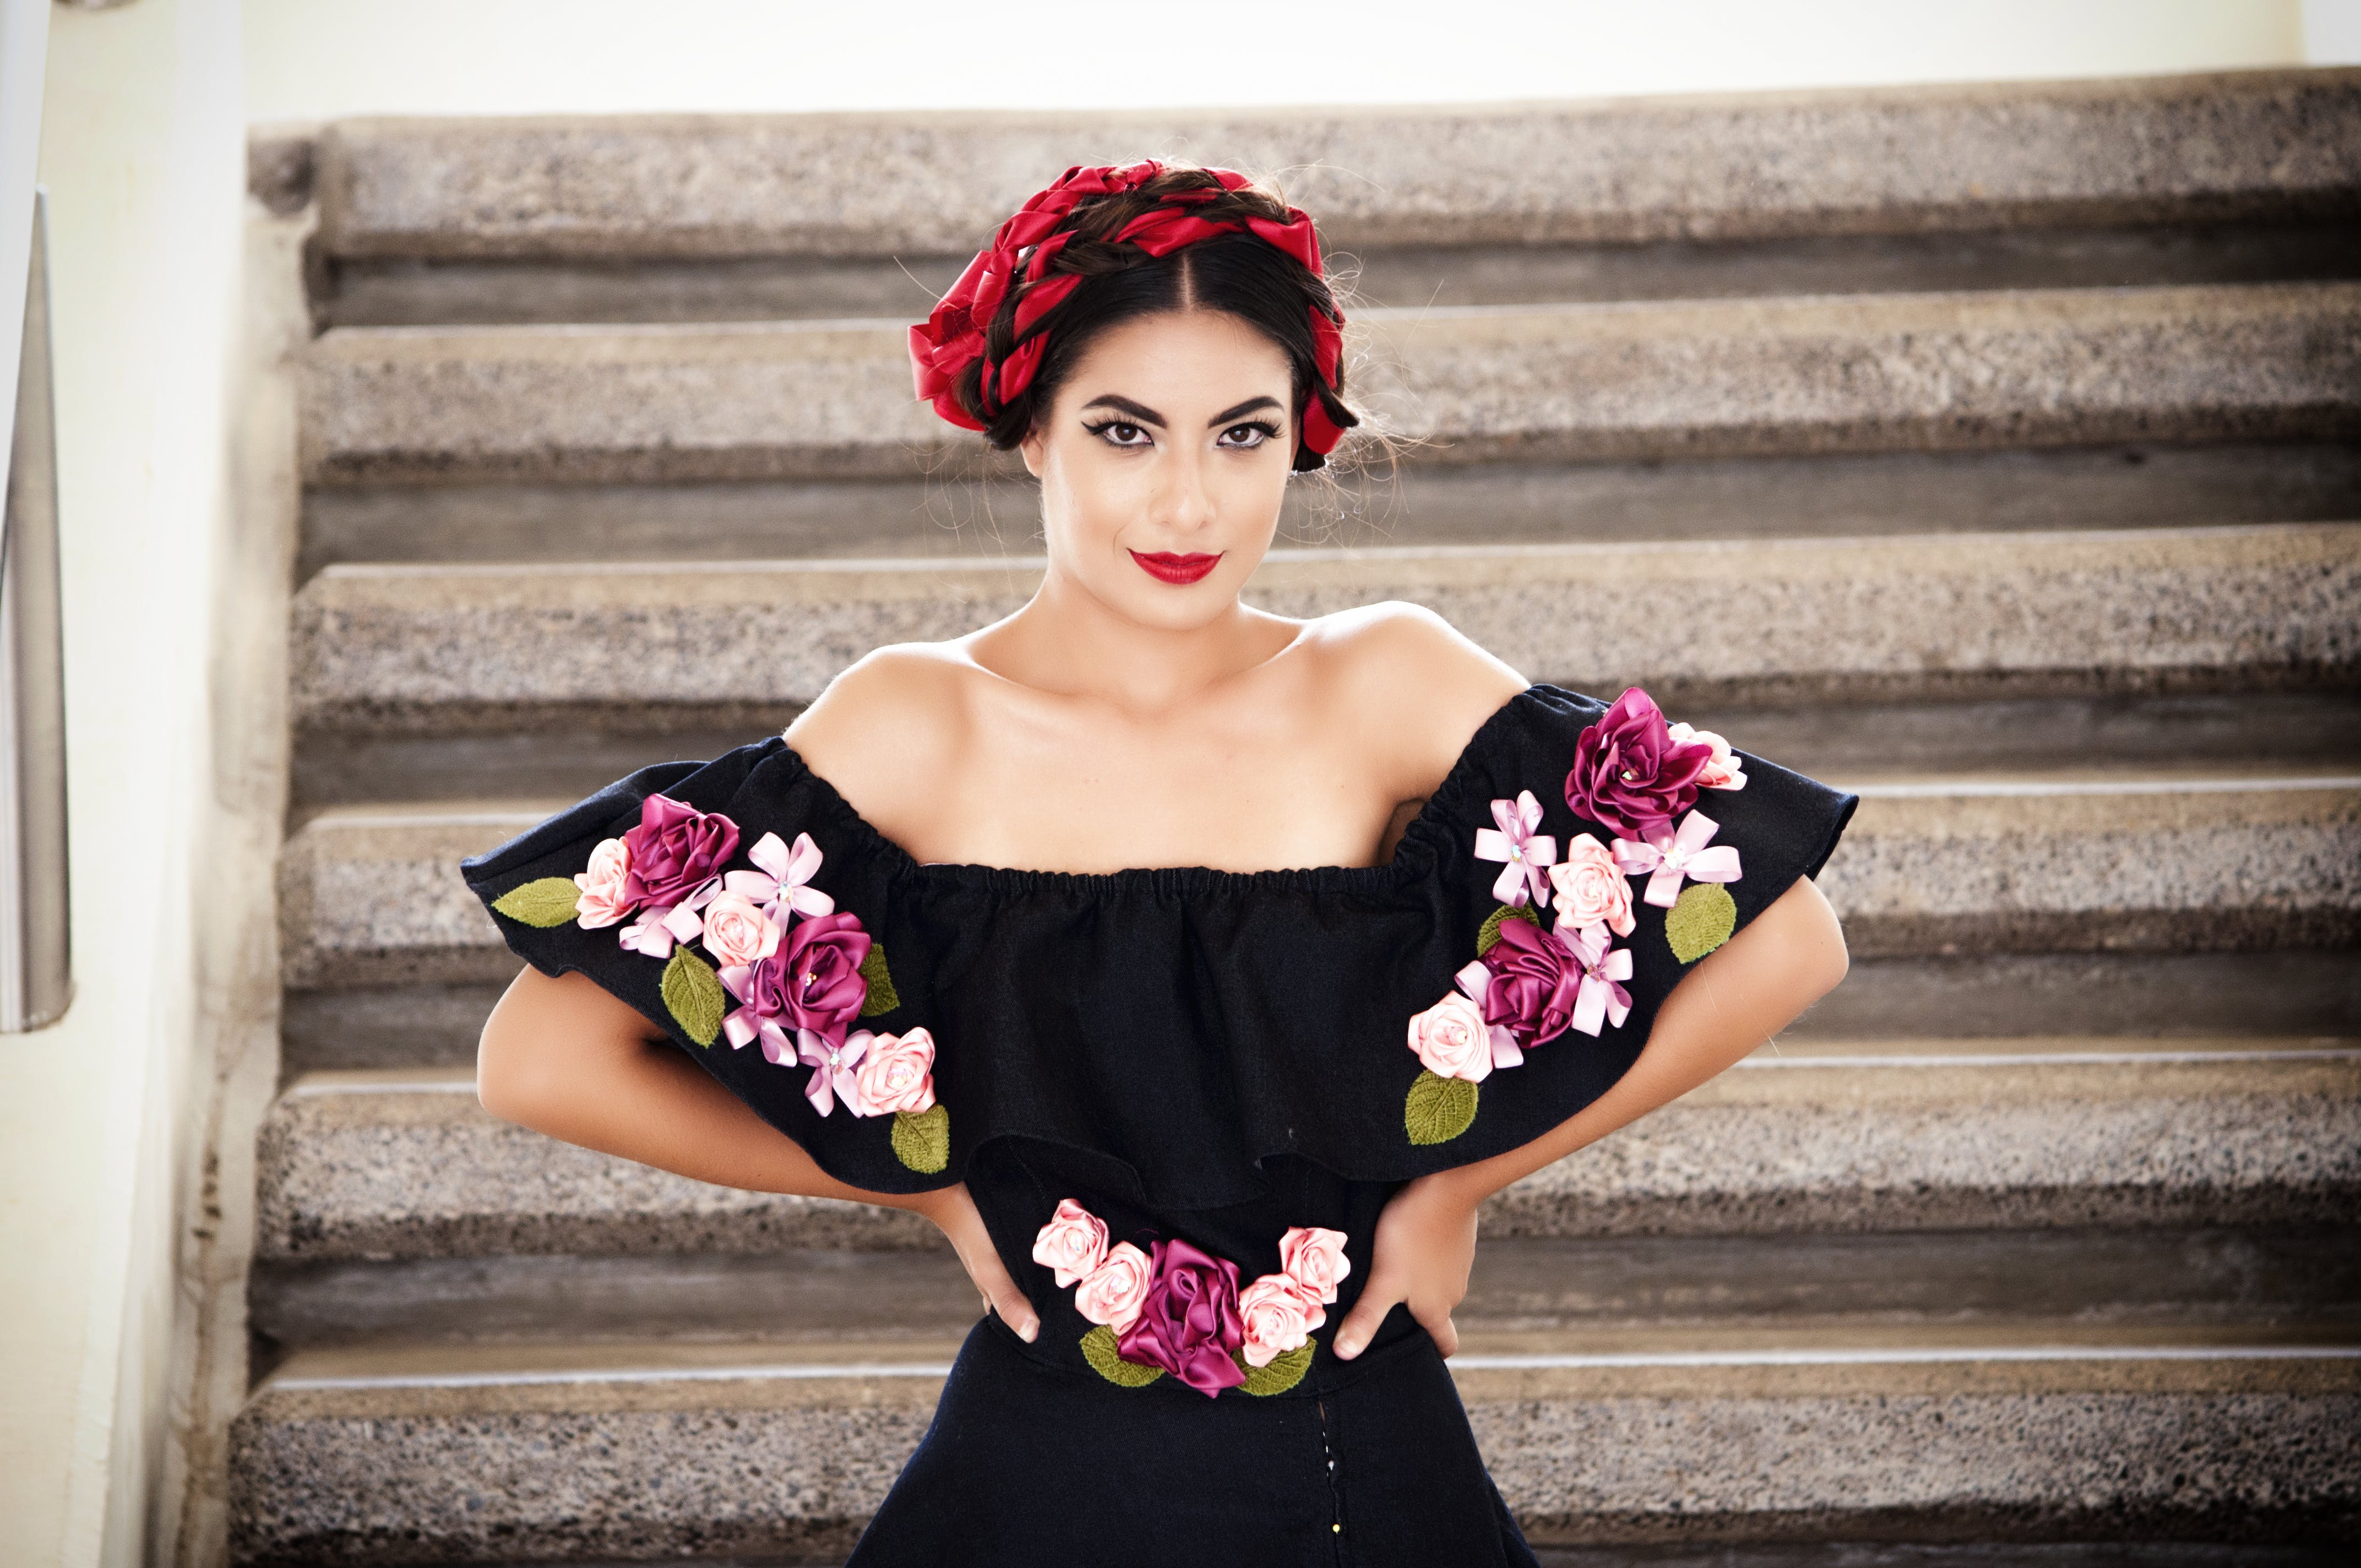 Woman Wearing Black And Pink Floral Blouse